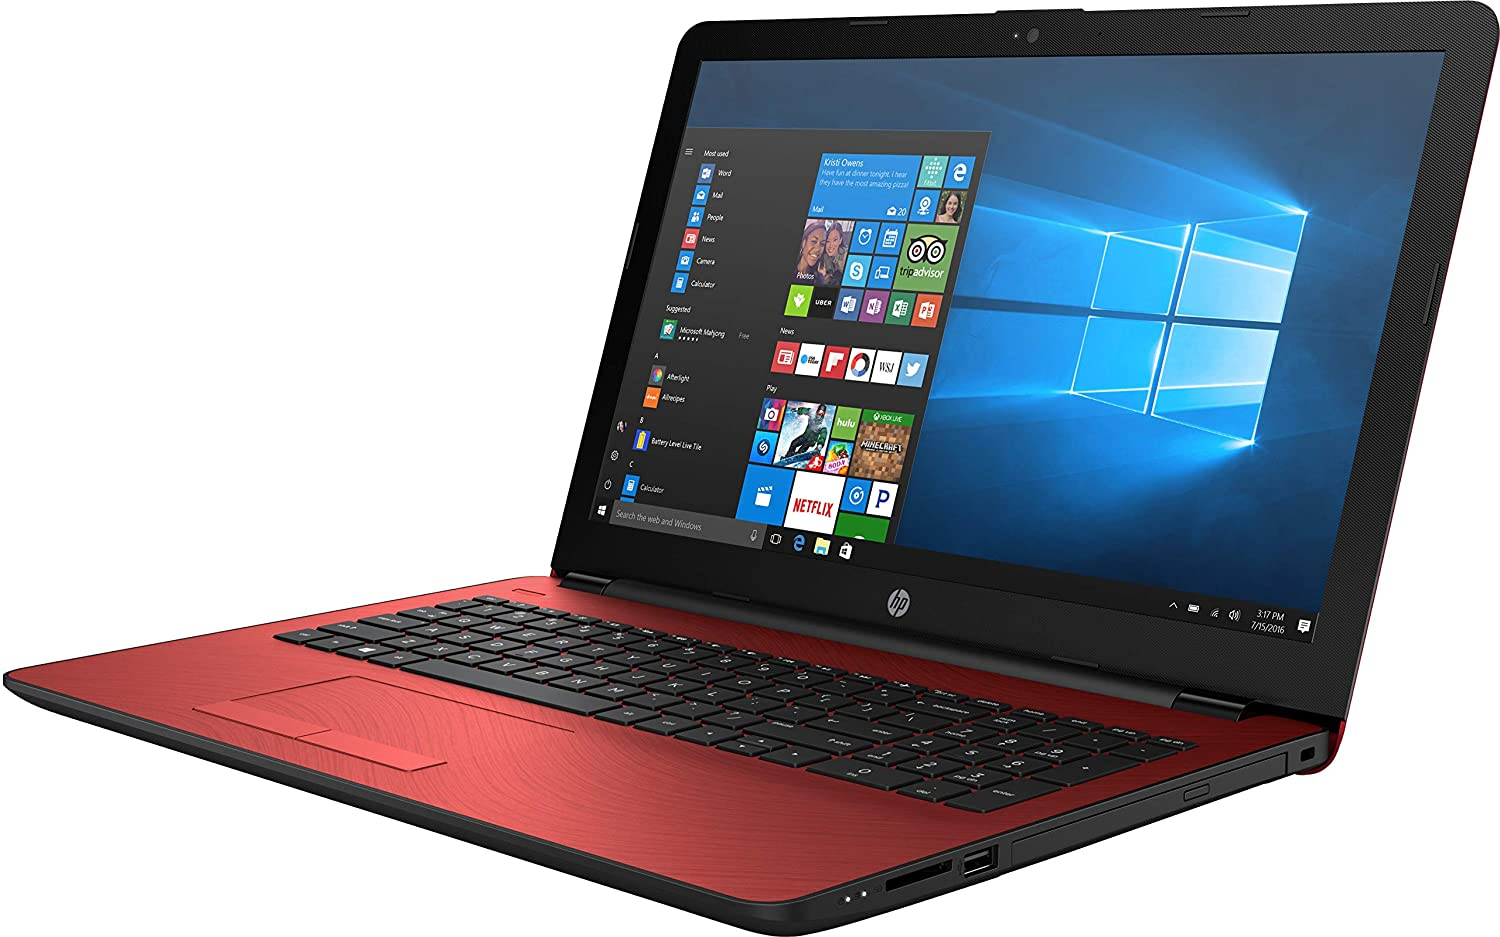 HP 15-bs234wm Intel Pentium N5000 Quad Core 4GB 500GB 15.6-inch Windows 10 Laptop (Renewed)